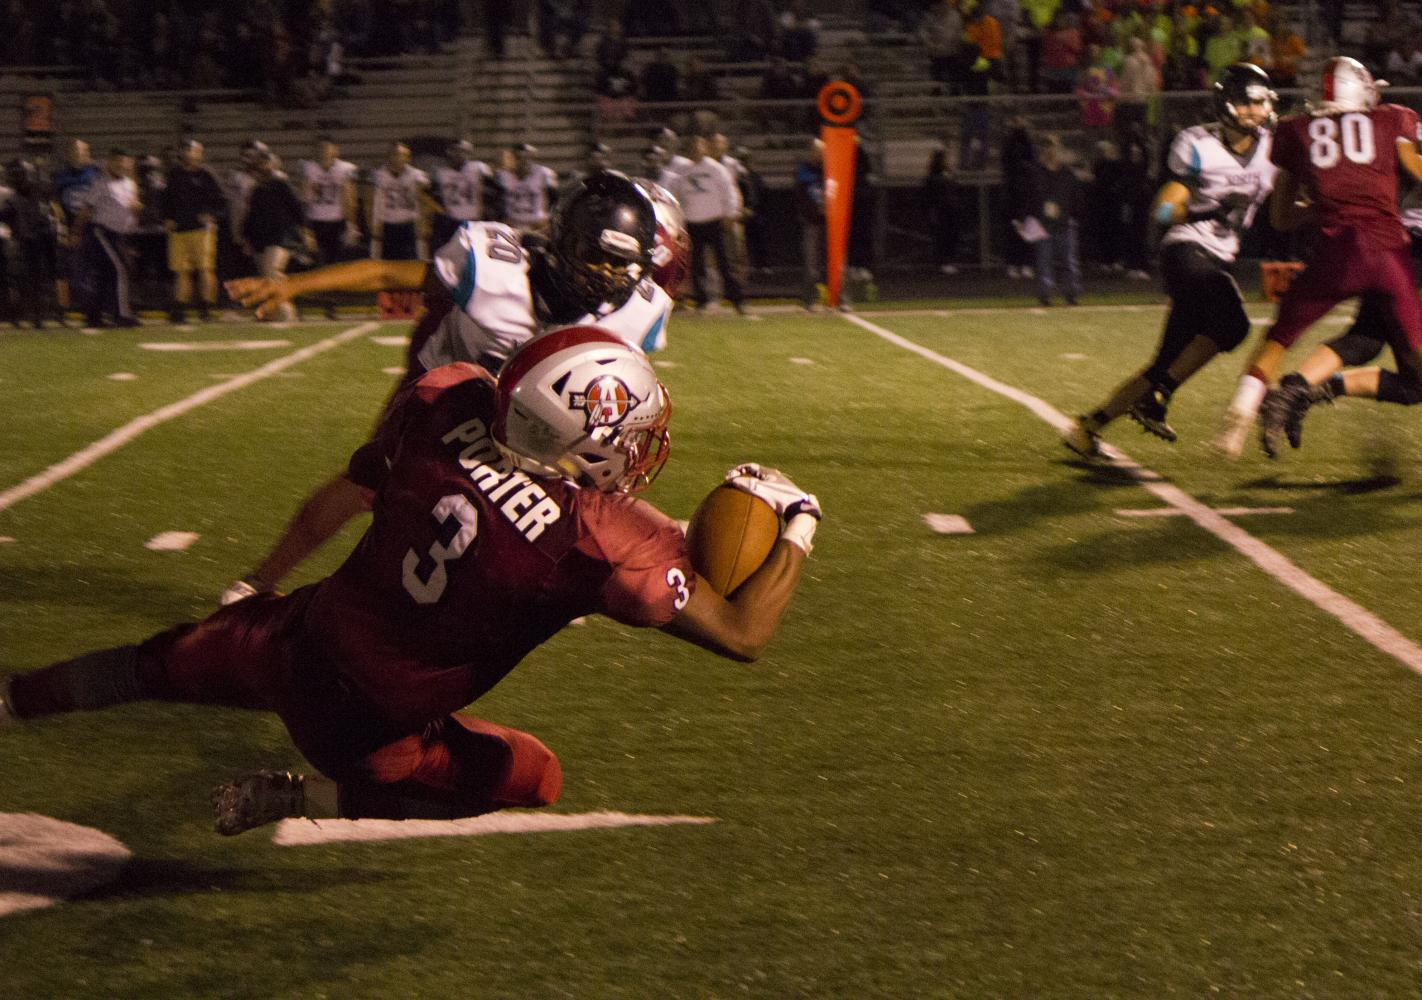 Senior Drew Porter falls to his knees to catch a pass in Friday night's game against Woodstock North.